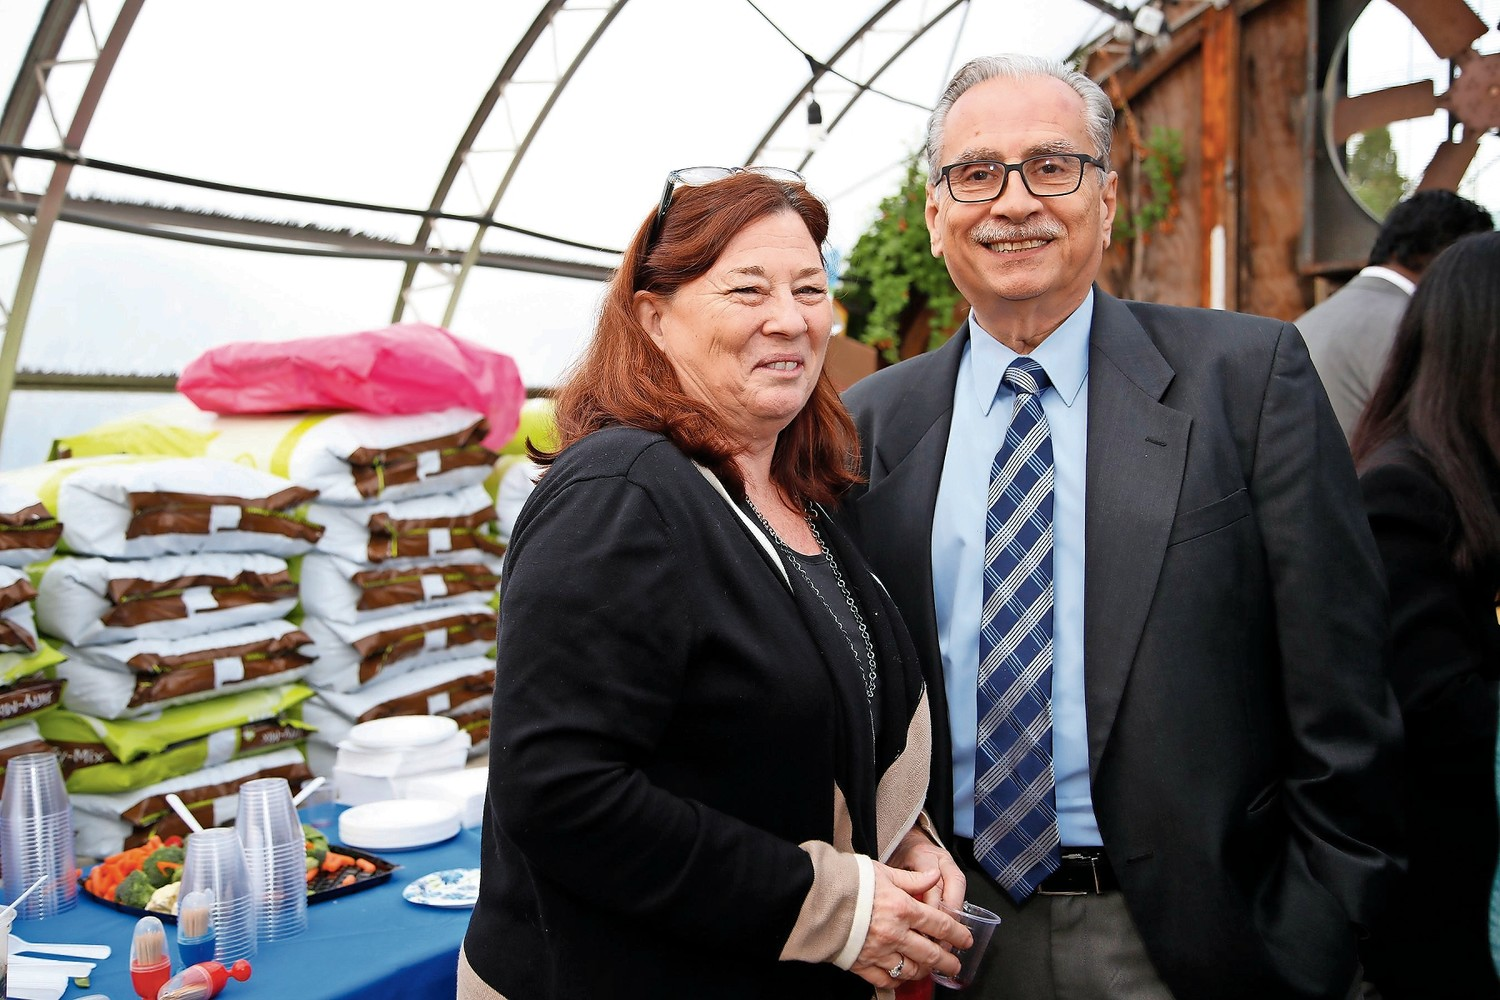 Kathi Monroe has volunteered for many organizations in Malverne, including the Chamber of Commerce. In May, Monroe and chamber member Jack Sorrentino helped coordinate the West Hempstead chamber's annual multi-chamber event at Crossroads Farm in Malverne.